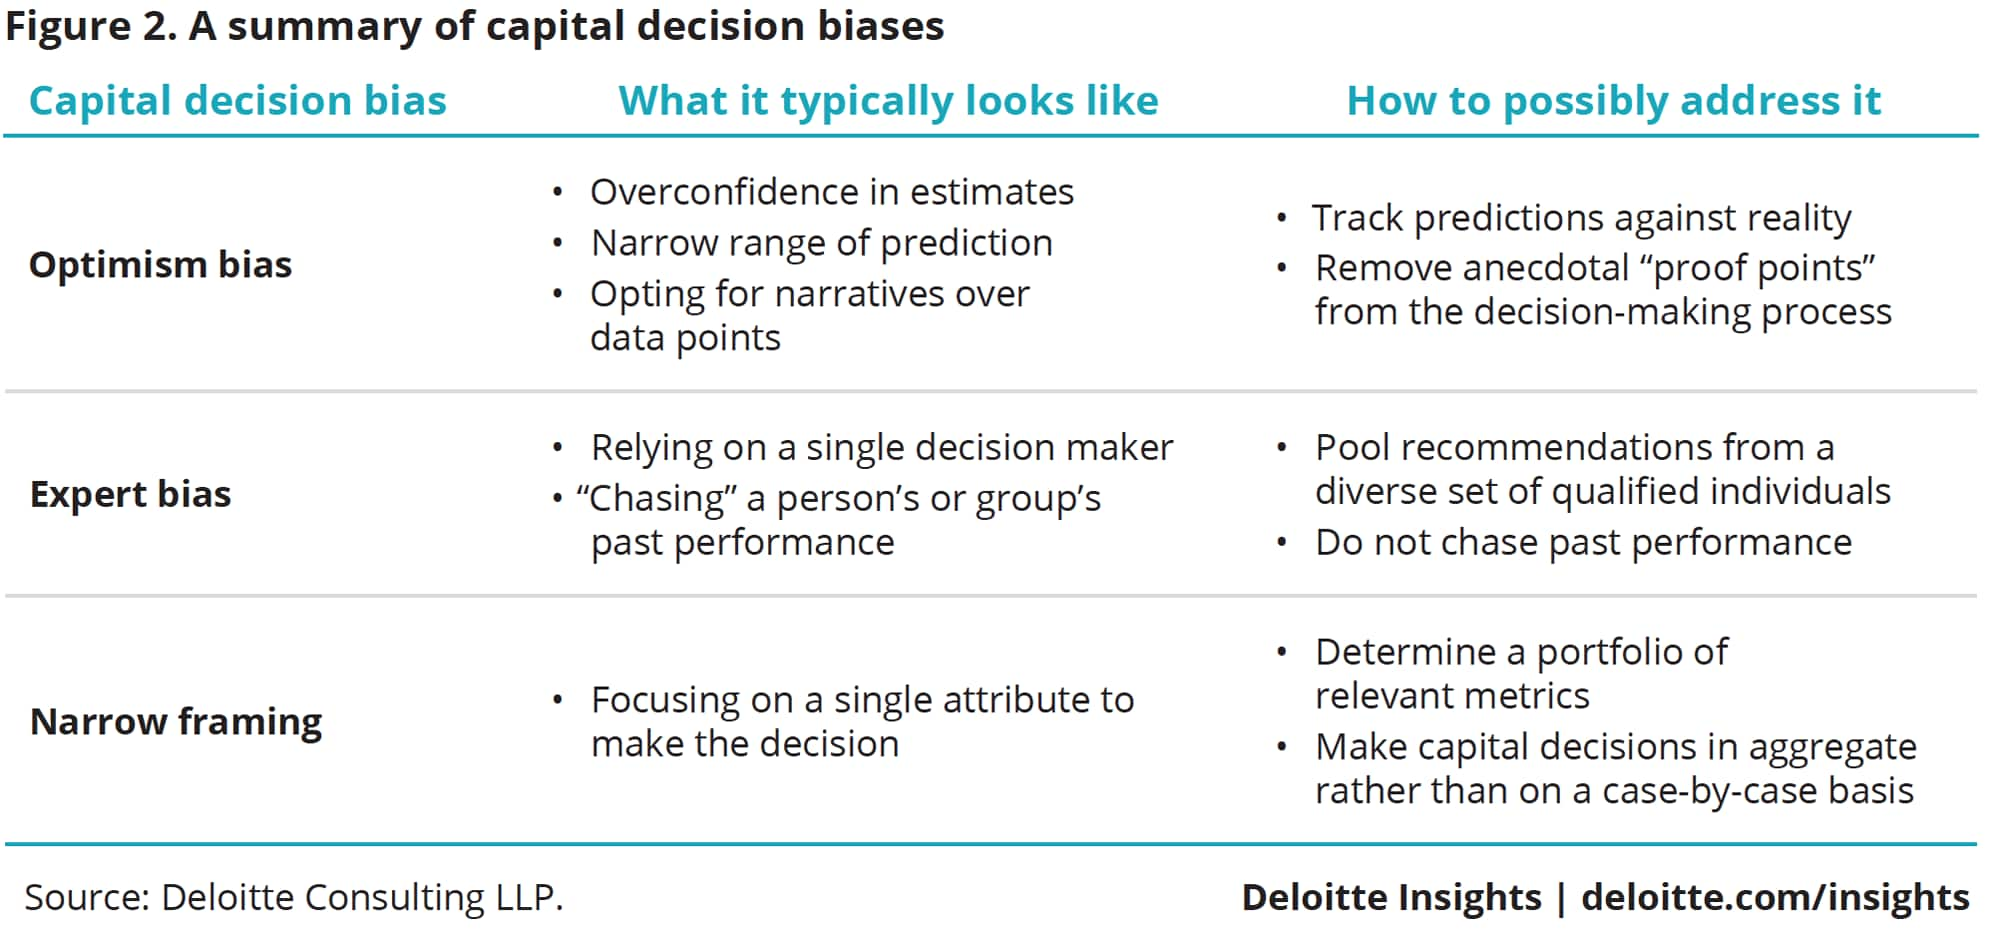 A summary of capital decision biases